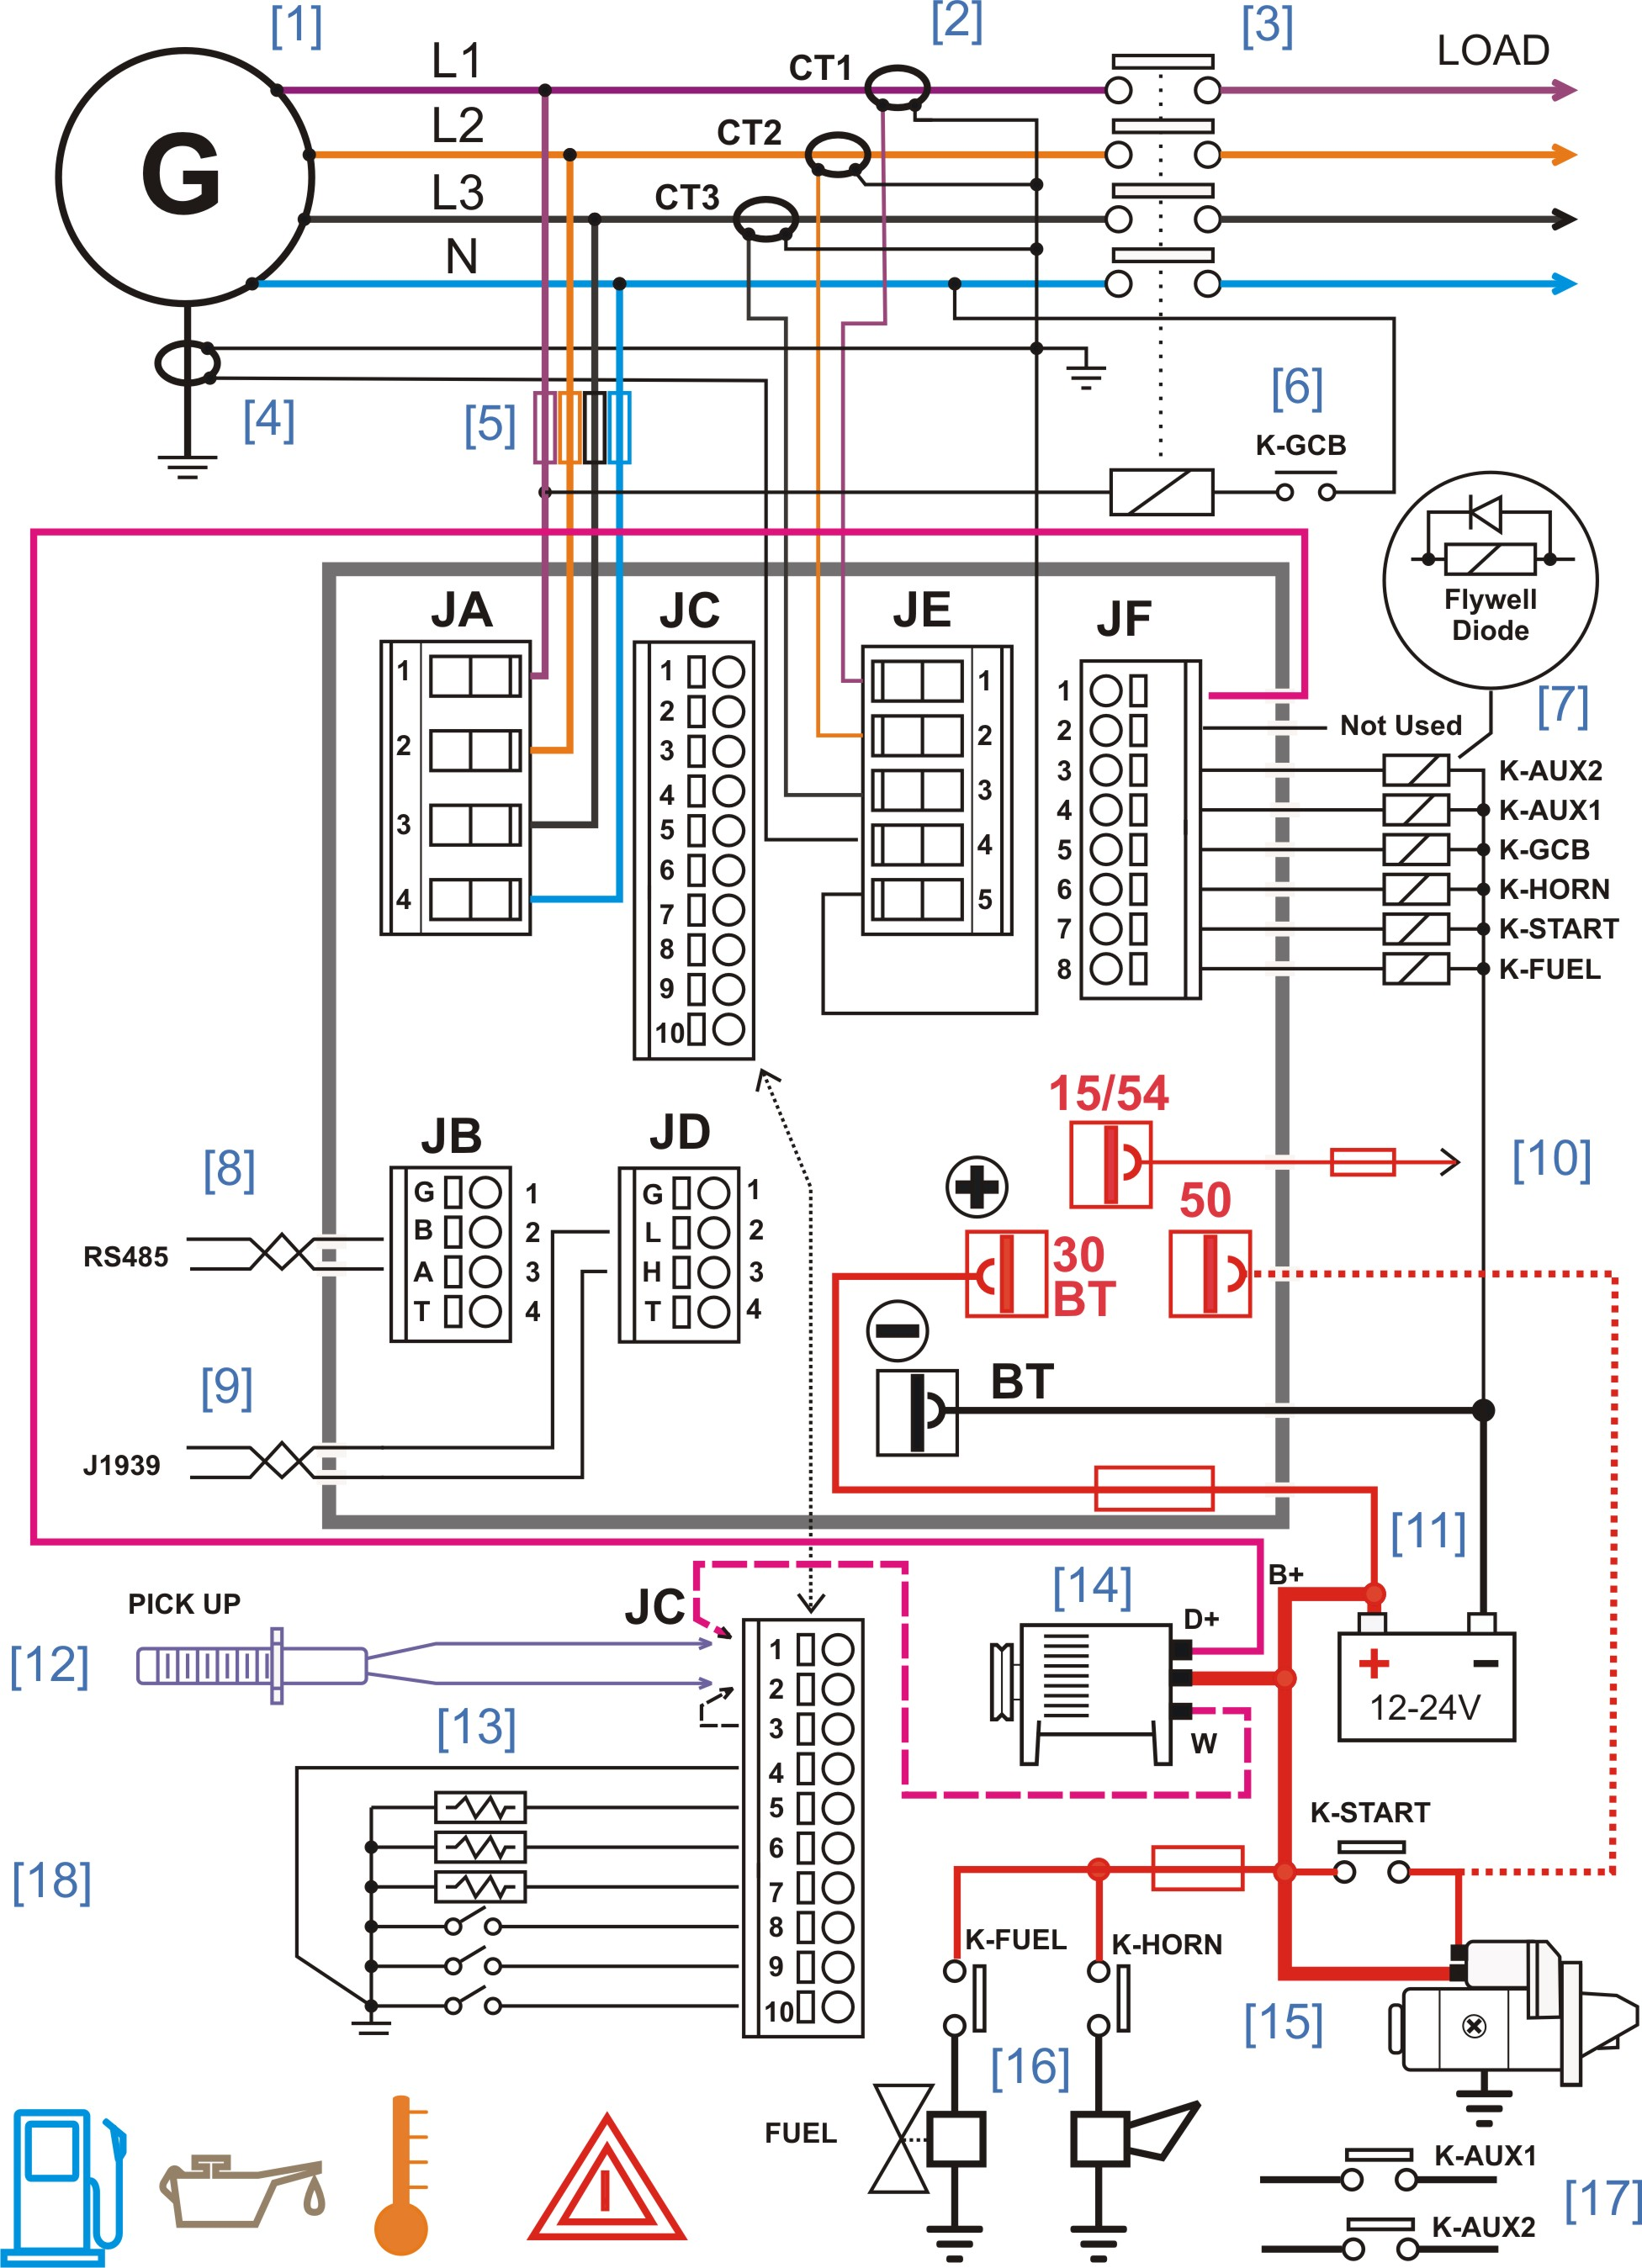 Diesel Generator Control Panel Wiring Diagram?resize\\\\\\\\\\\\\\\=665%2C919\\\\\\\\\\\\\\\&ssl\\\\\\\\\\\\\\\=1 xerox jcf 1 tray wiring diagram,jcf \u2022 edmiracle co  at creativeand.co